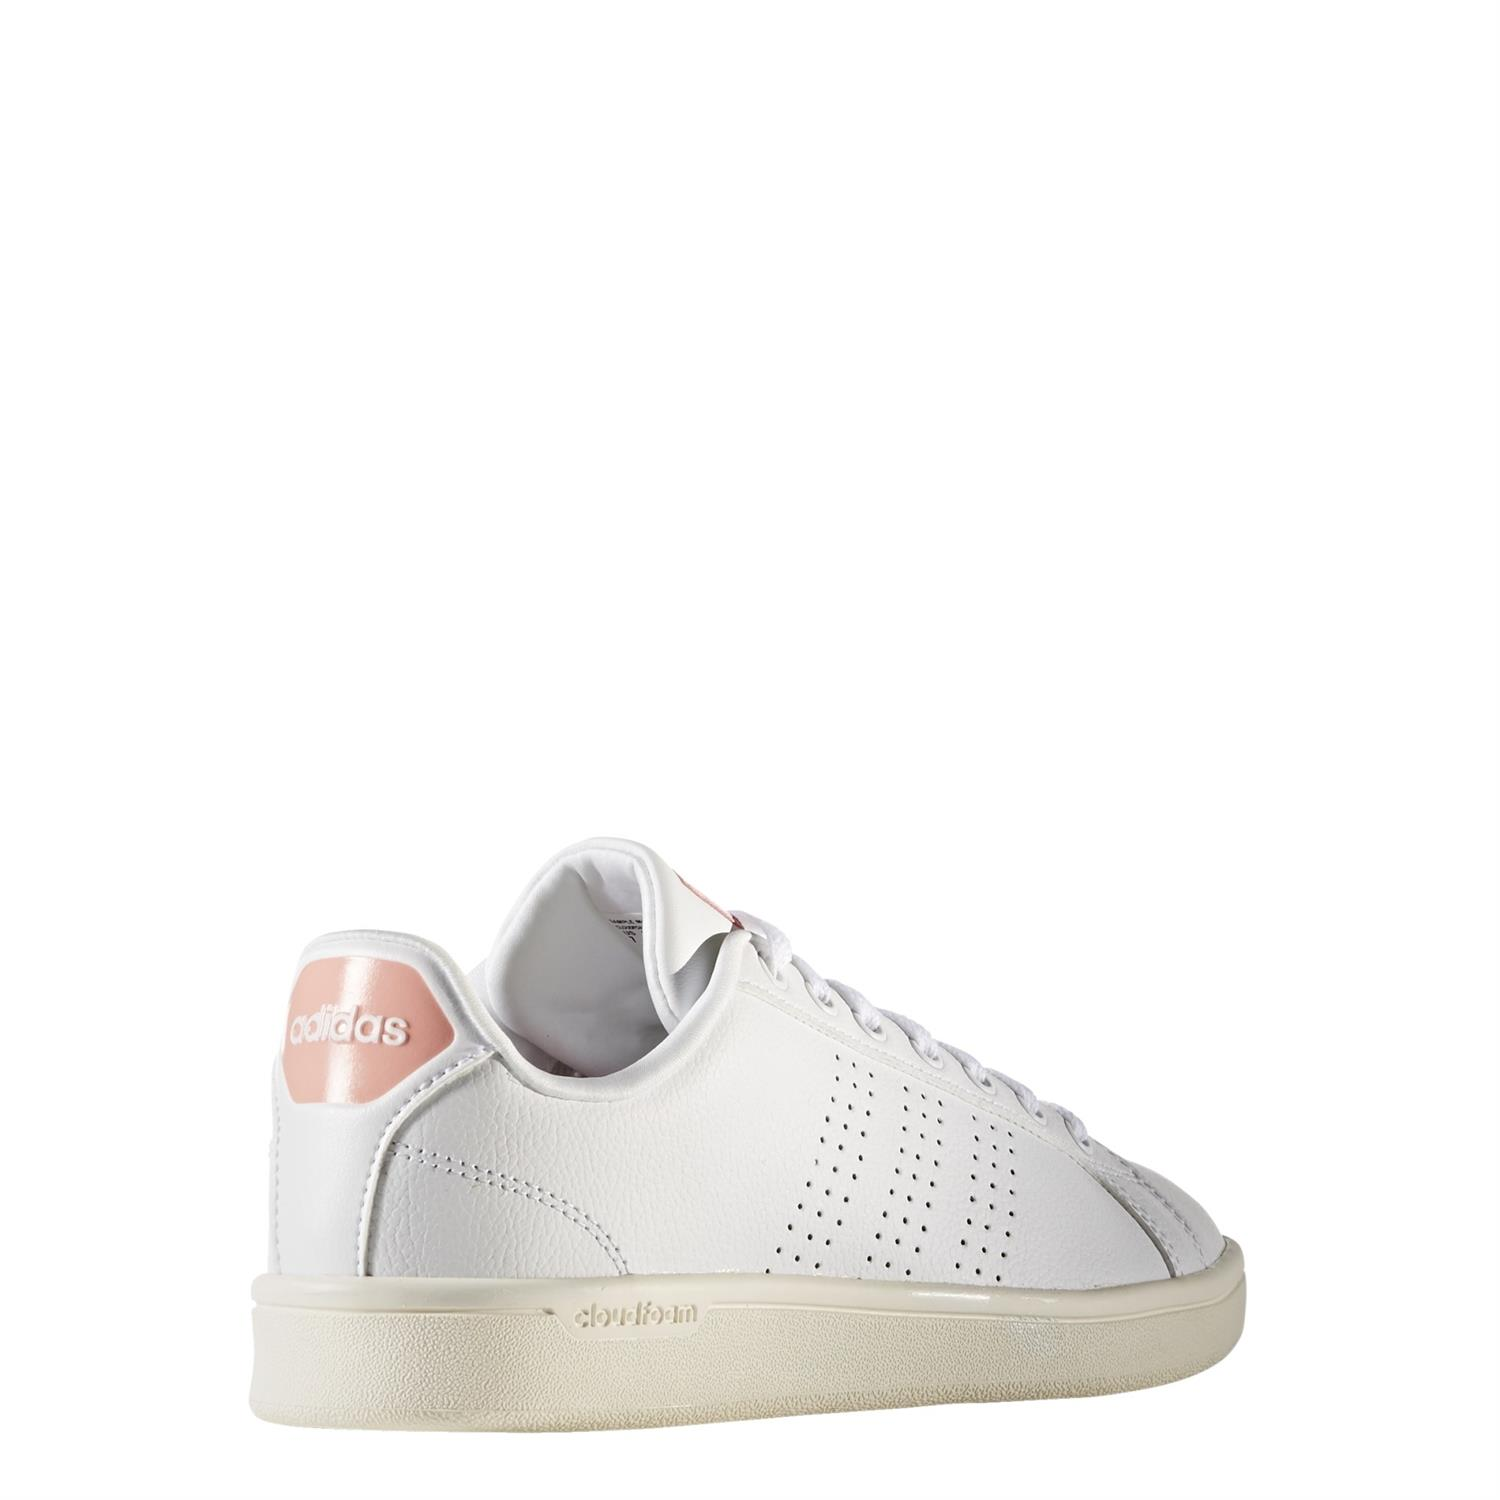 Witte Gympen Adidas Cloudfoam Advantage Dames Sneakers Wit Dames